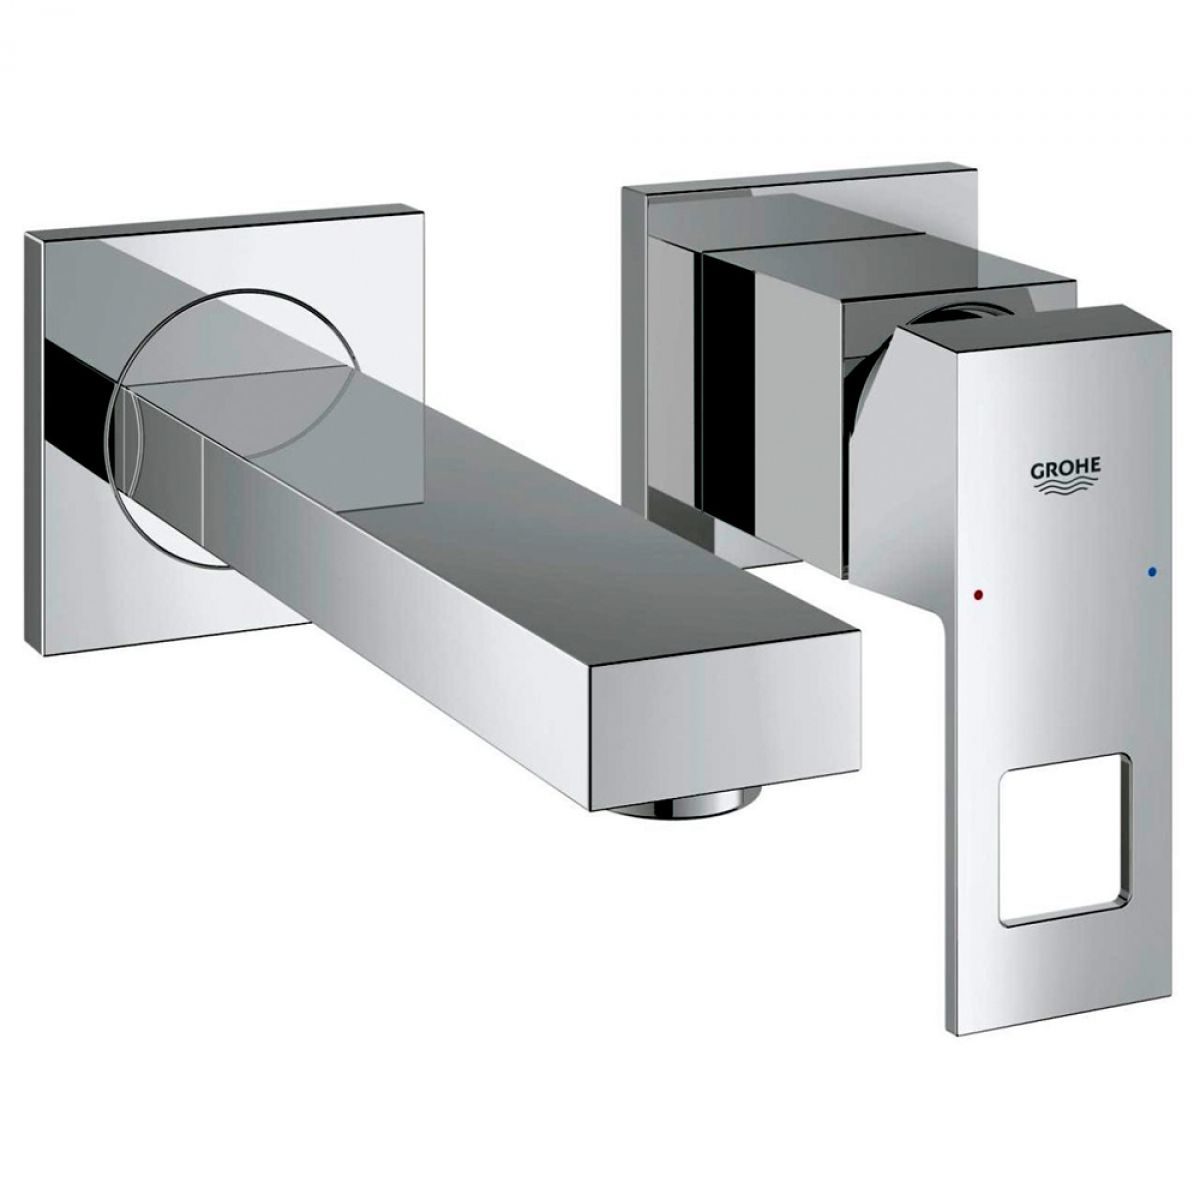 grohe eurocube 2 hole wall mounted basin mixer uk bathrooms. Black Bedroom Furniture Sets. Home Design Ideas